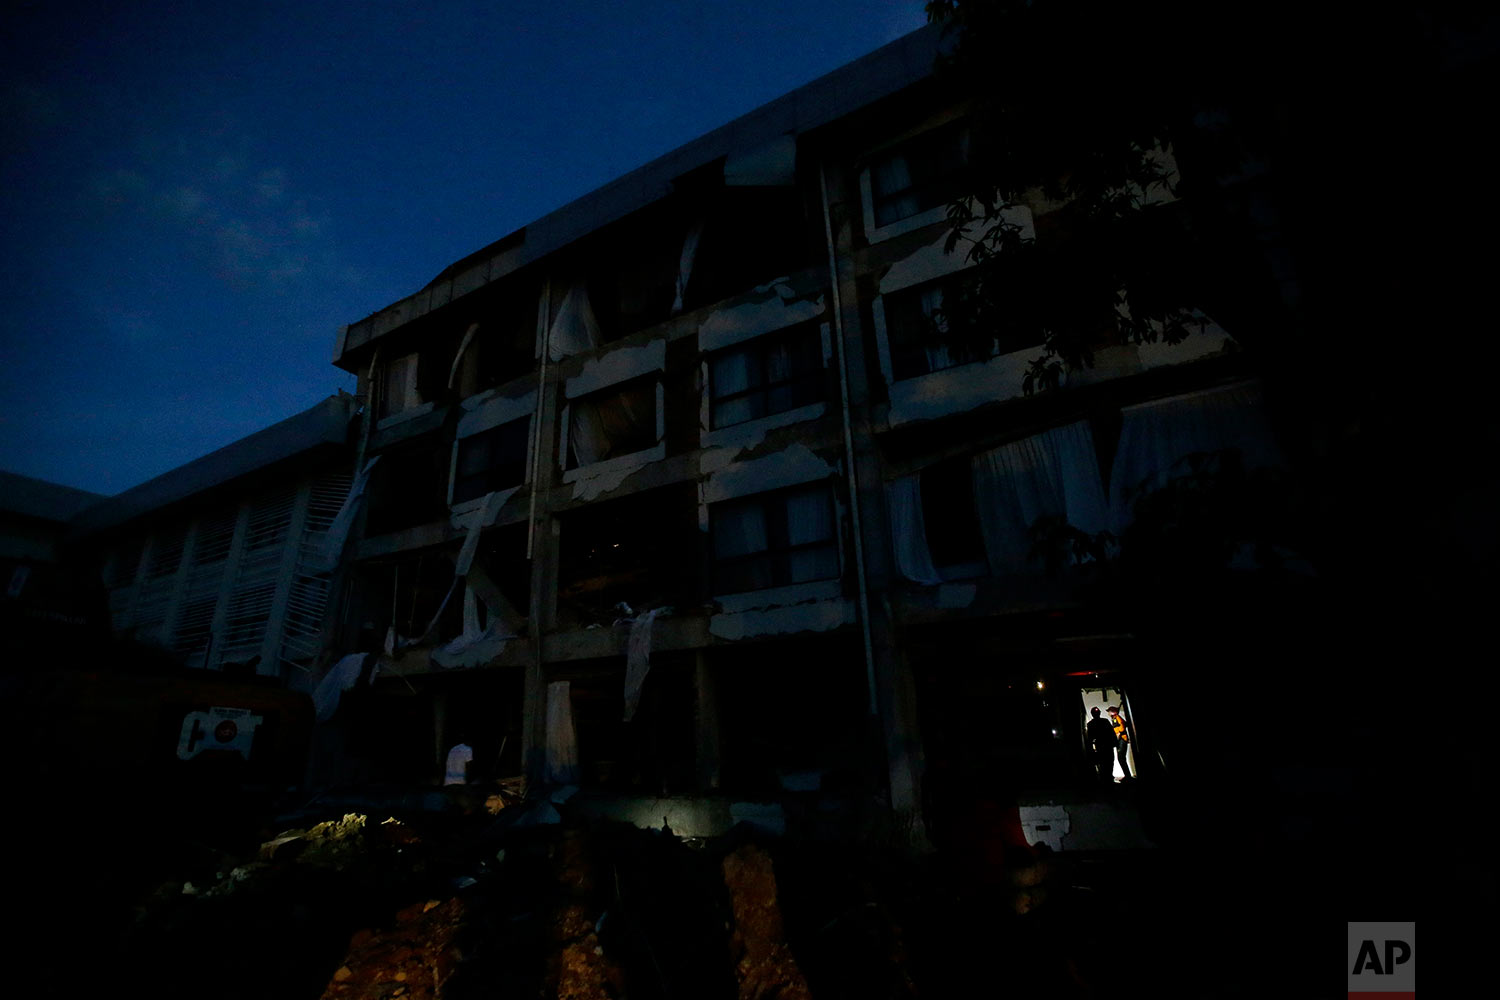 French rescuers join their Filipino counterparts as they check for survivors as night falls at the heavily damaged Mercure hotel after a massive earthquake and tsunami hit Palu, Central Sulawesi, Indonesia, Oct. 4, 2018. (AP Photo/Aaron Favila)